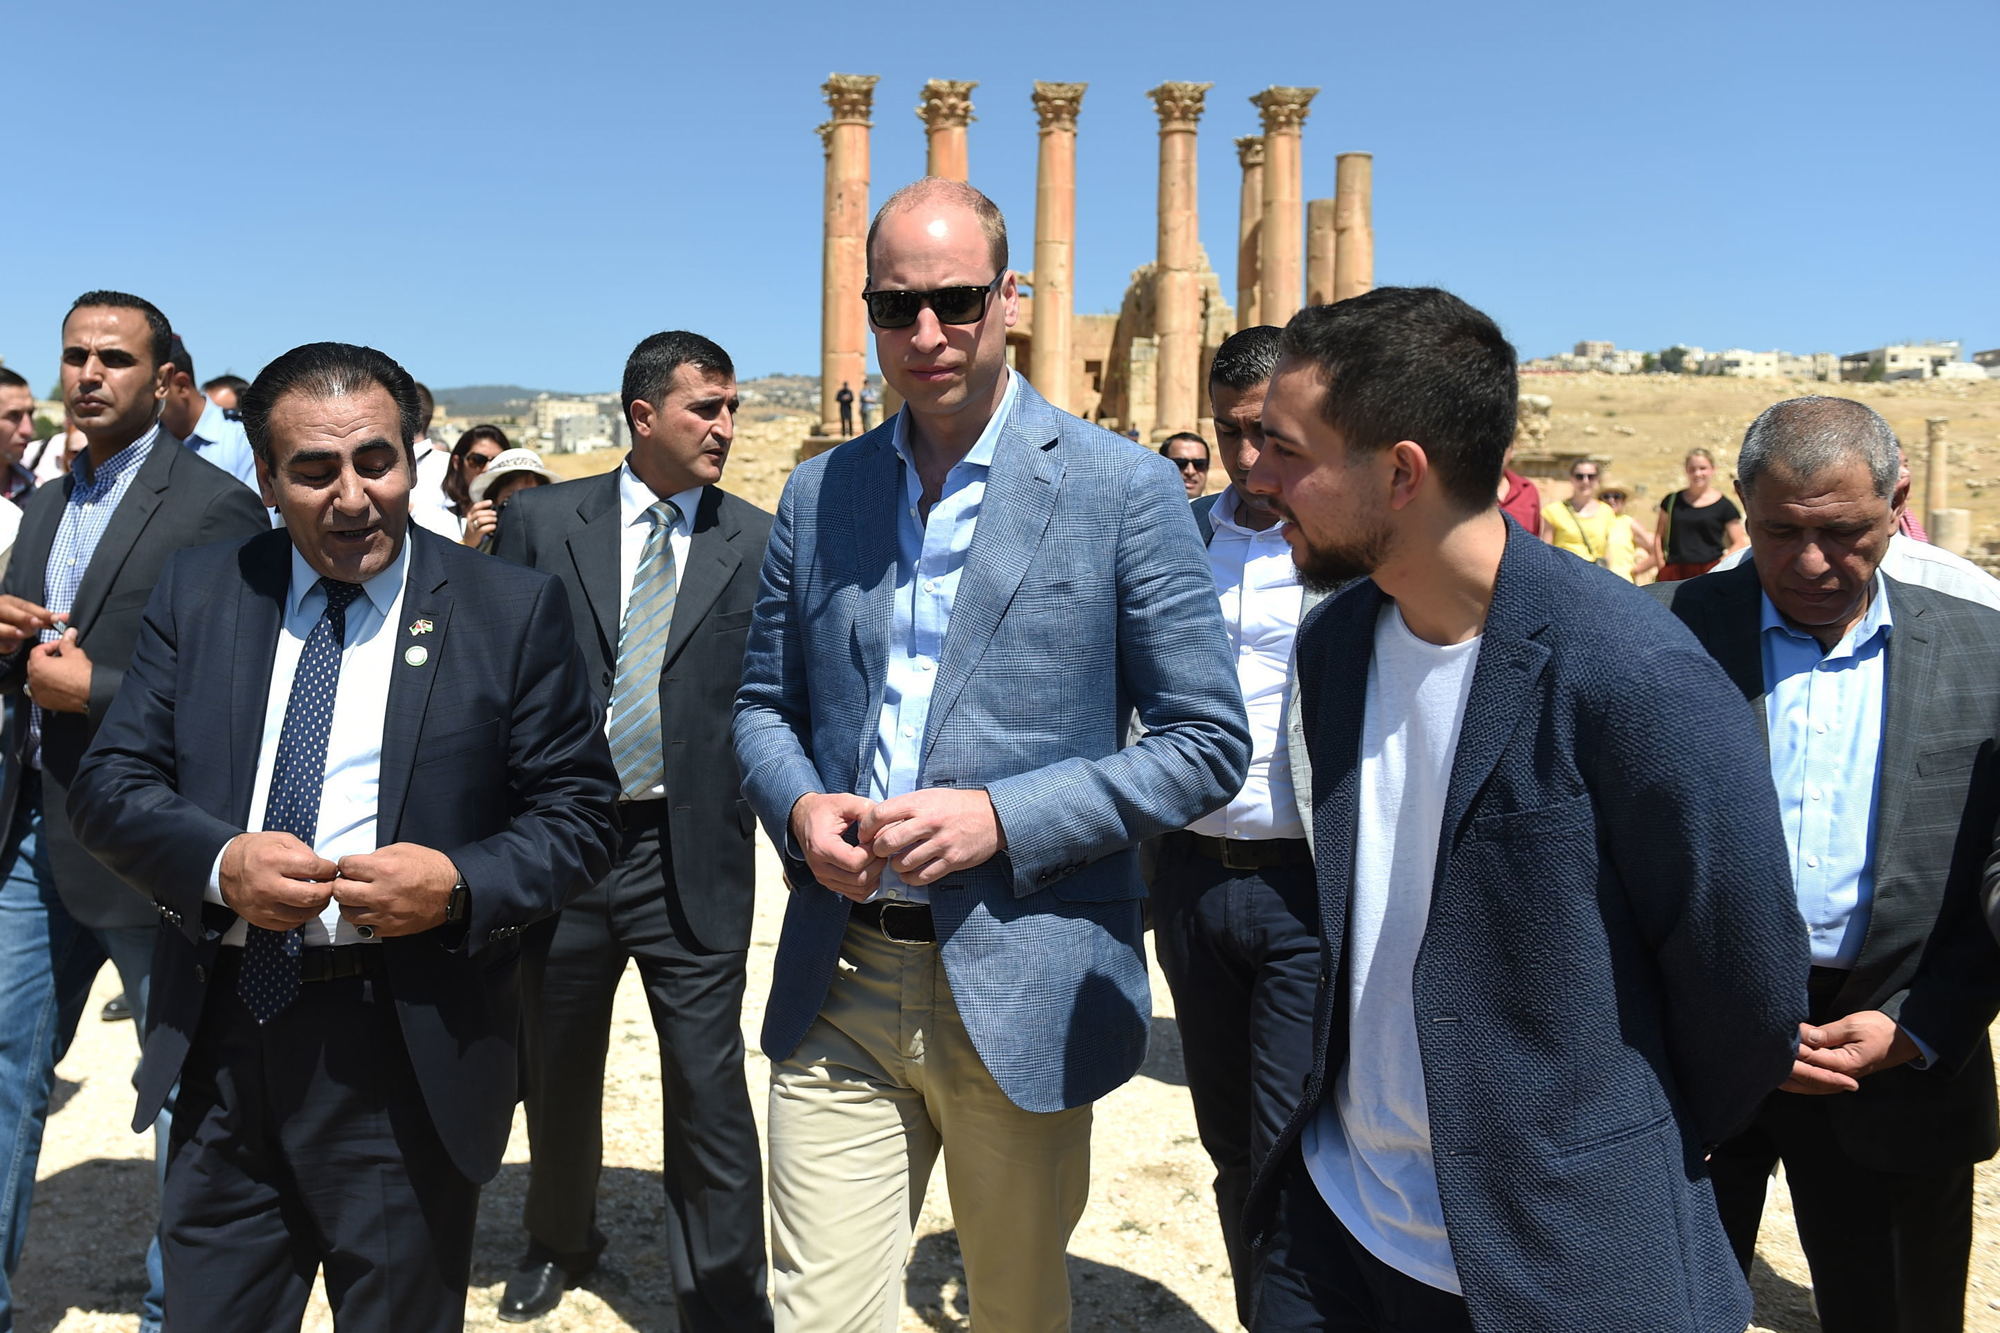 Duke of Cambridge Middle East tour Day 2